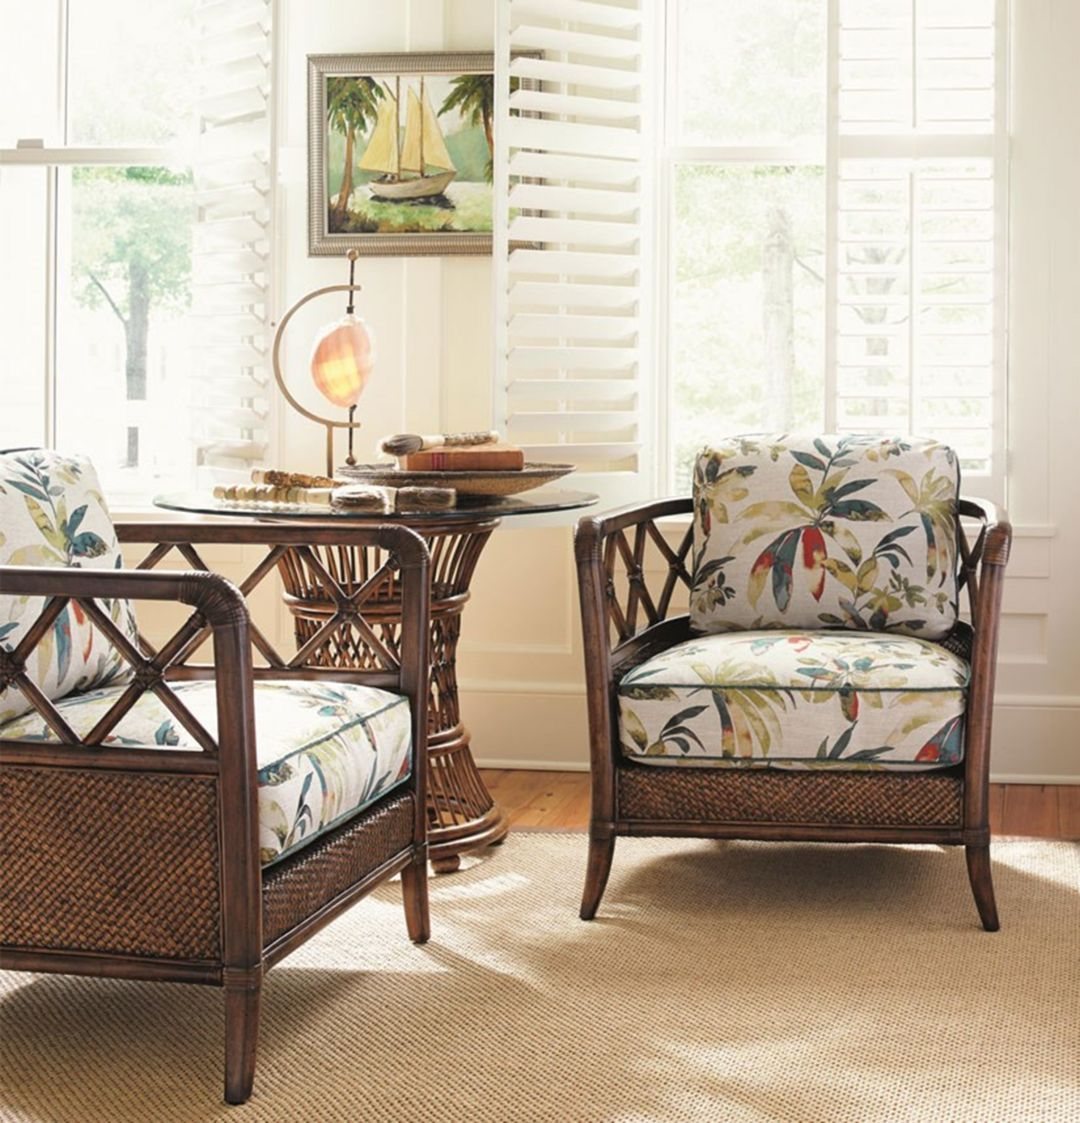 10 Incredible Farmhouse Living Room Decoration Ideas In 2019